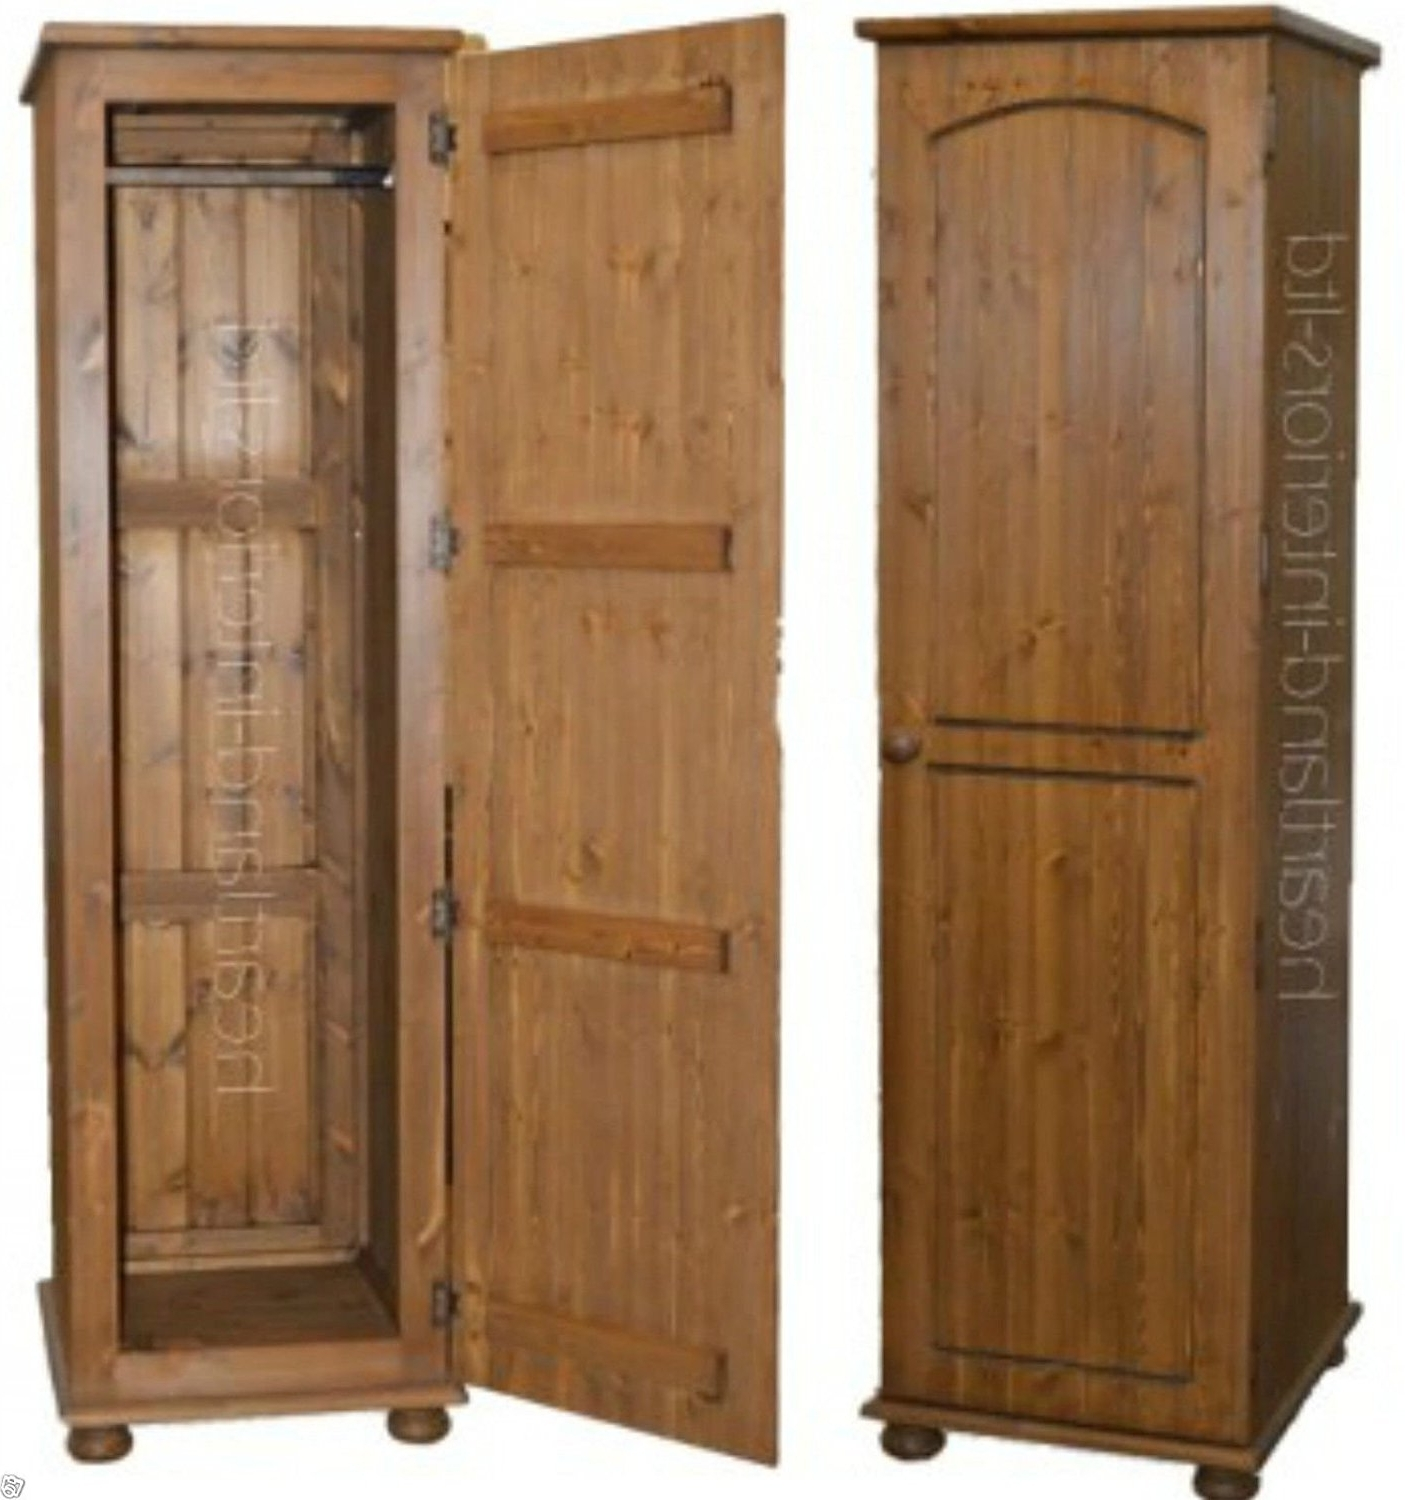 Famous Solid Pine 1 Door Single Wardrobe, Handcrafted & Waxed Pine Pertaining To Single Pine Wardrobes (View 6 of 15)